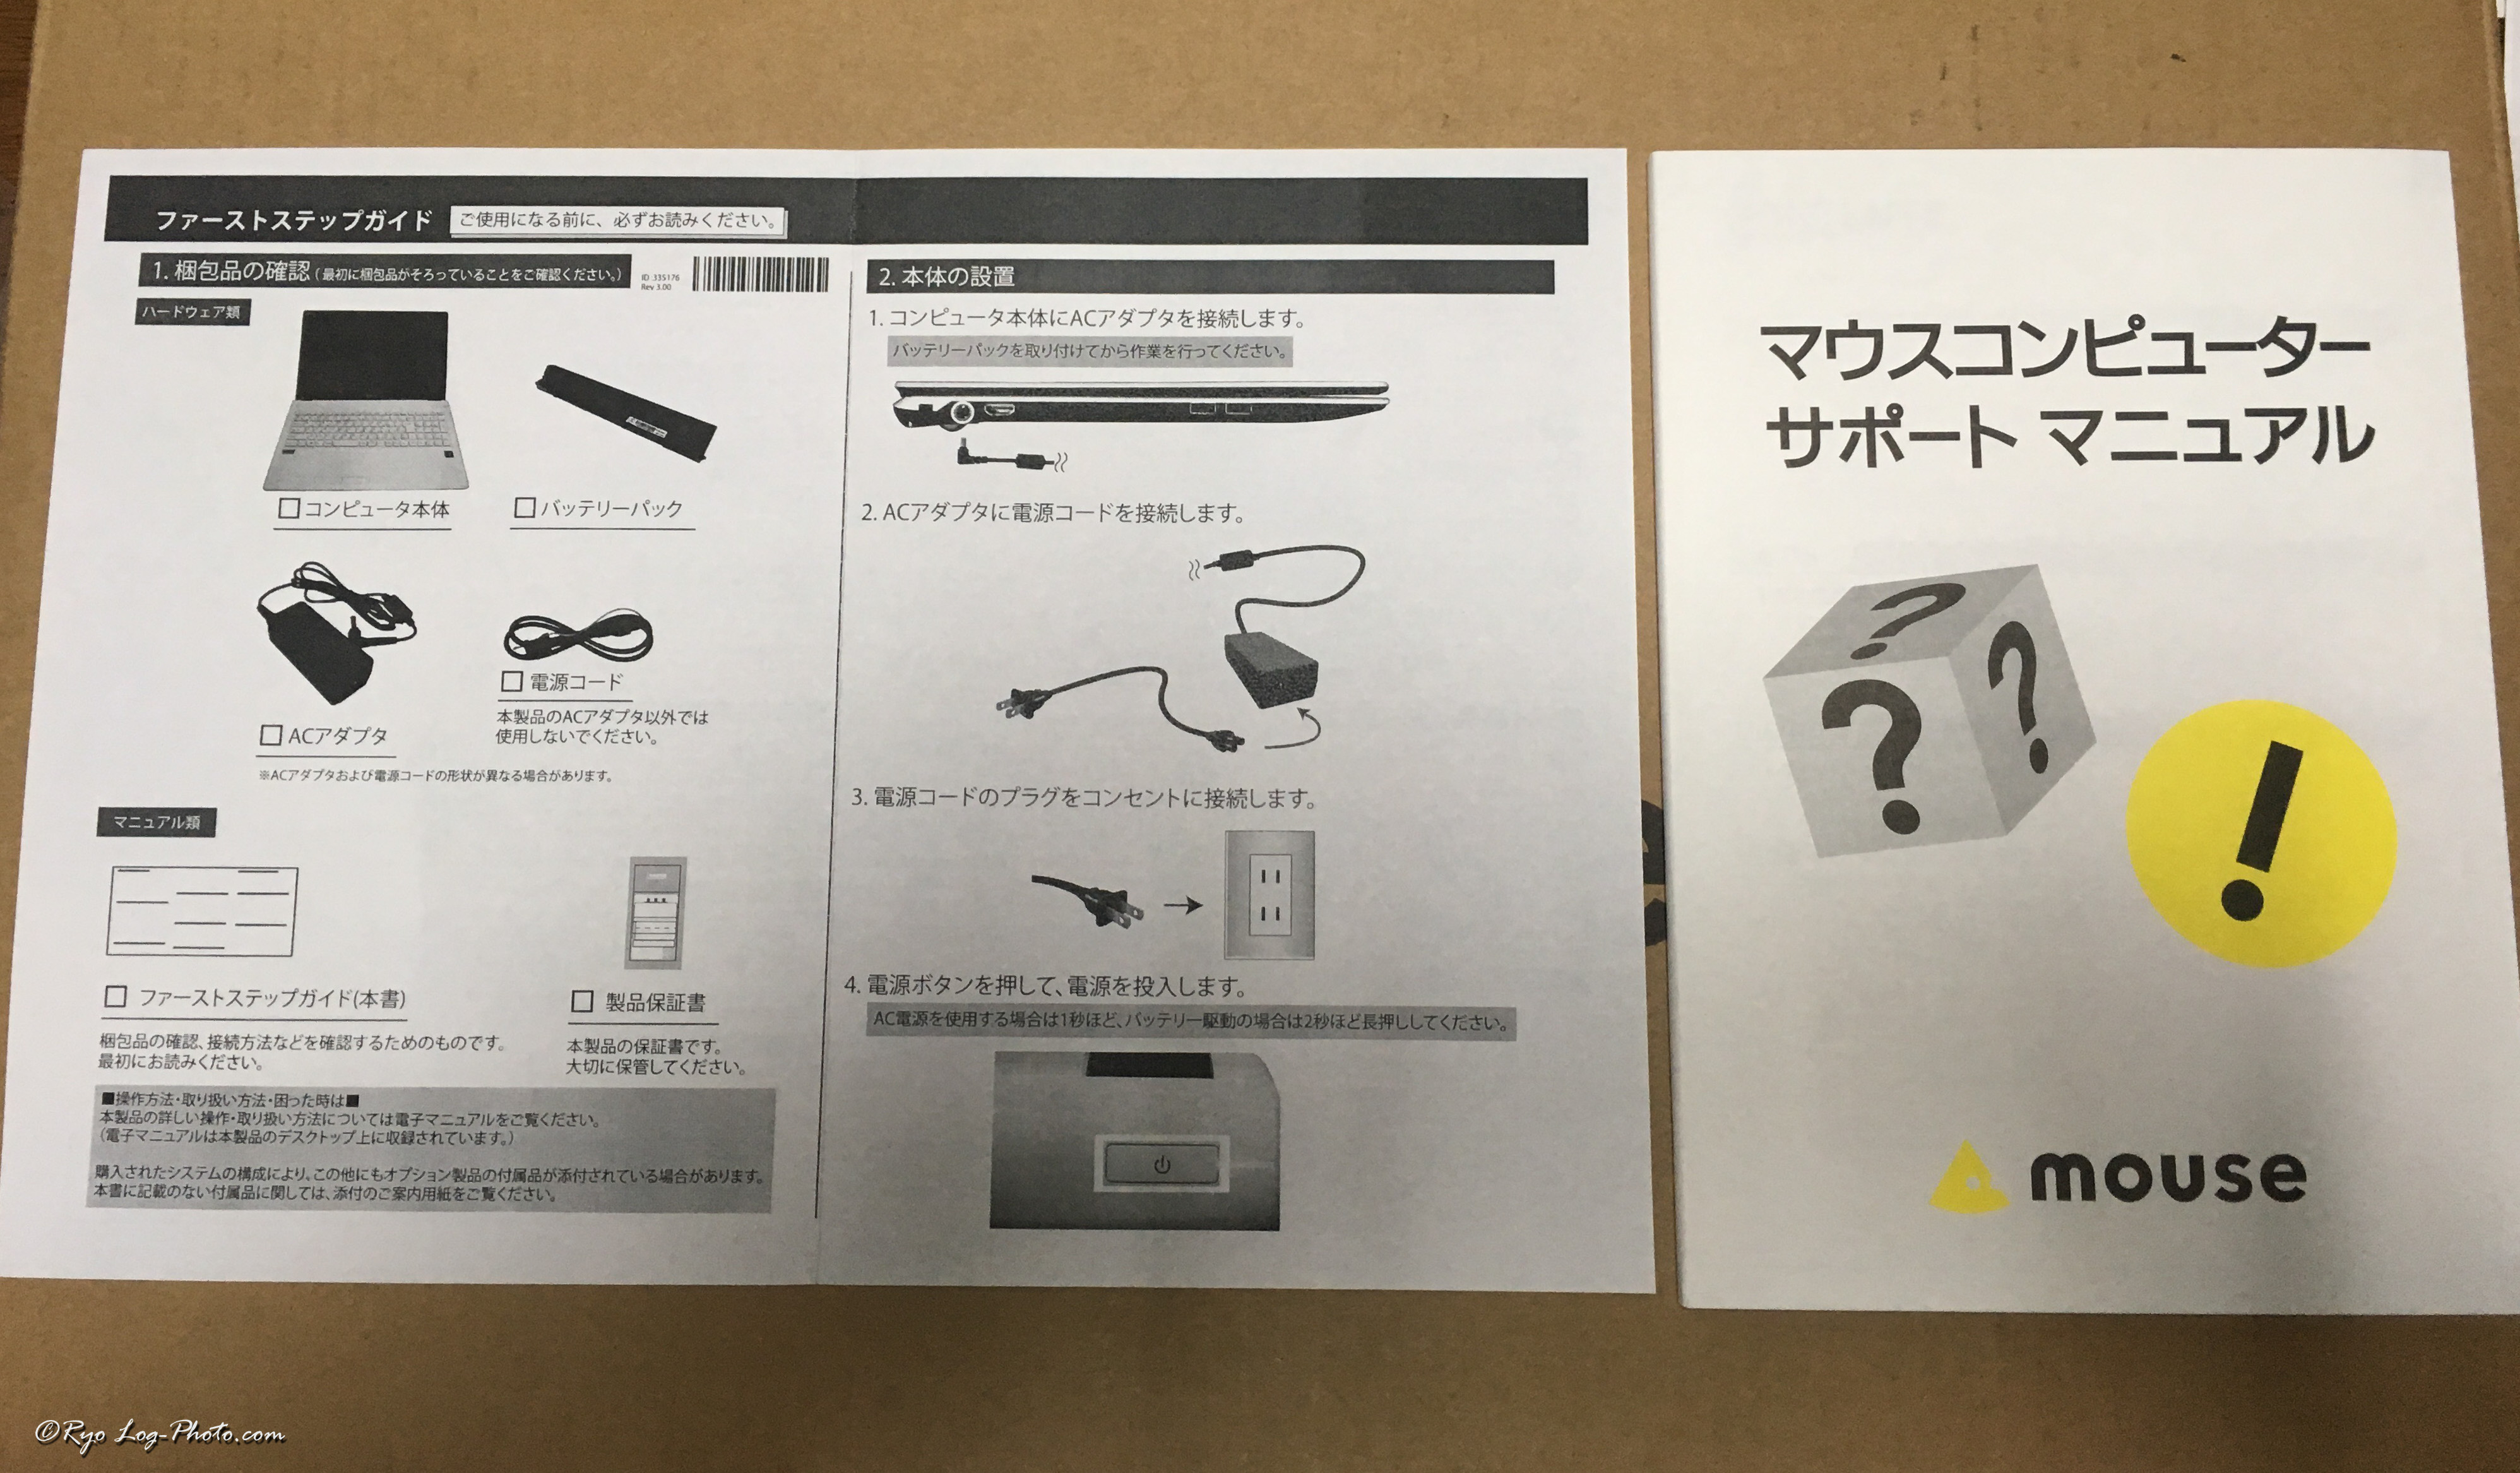 mouse コンピューター パソコン サポート